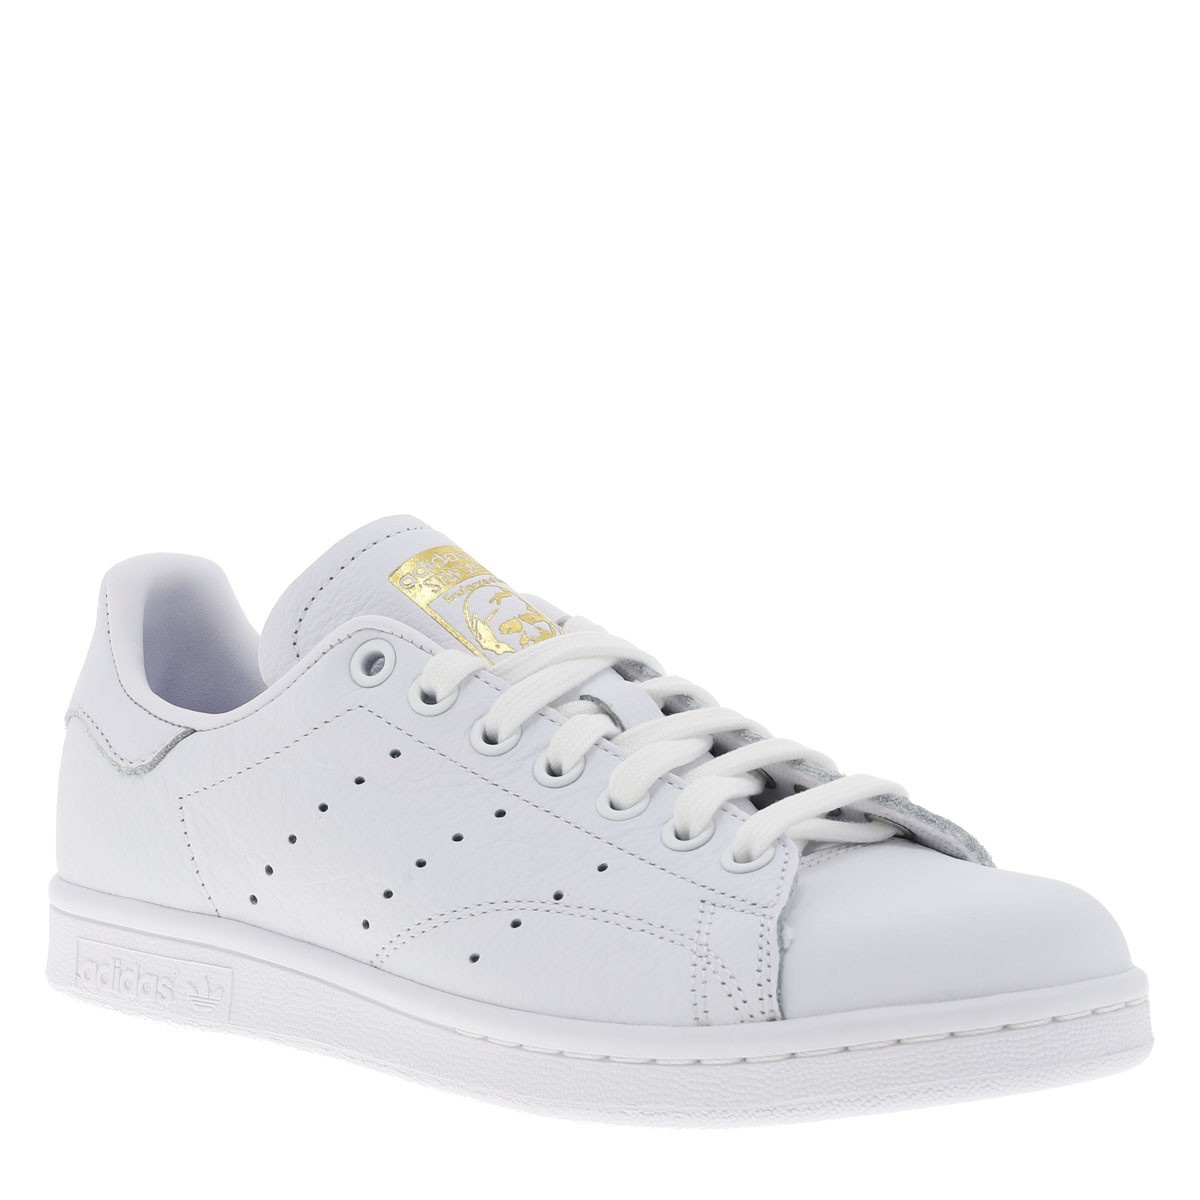 stan smith croco homme noir Adidas original chaussures